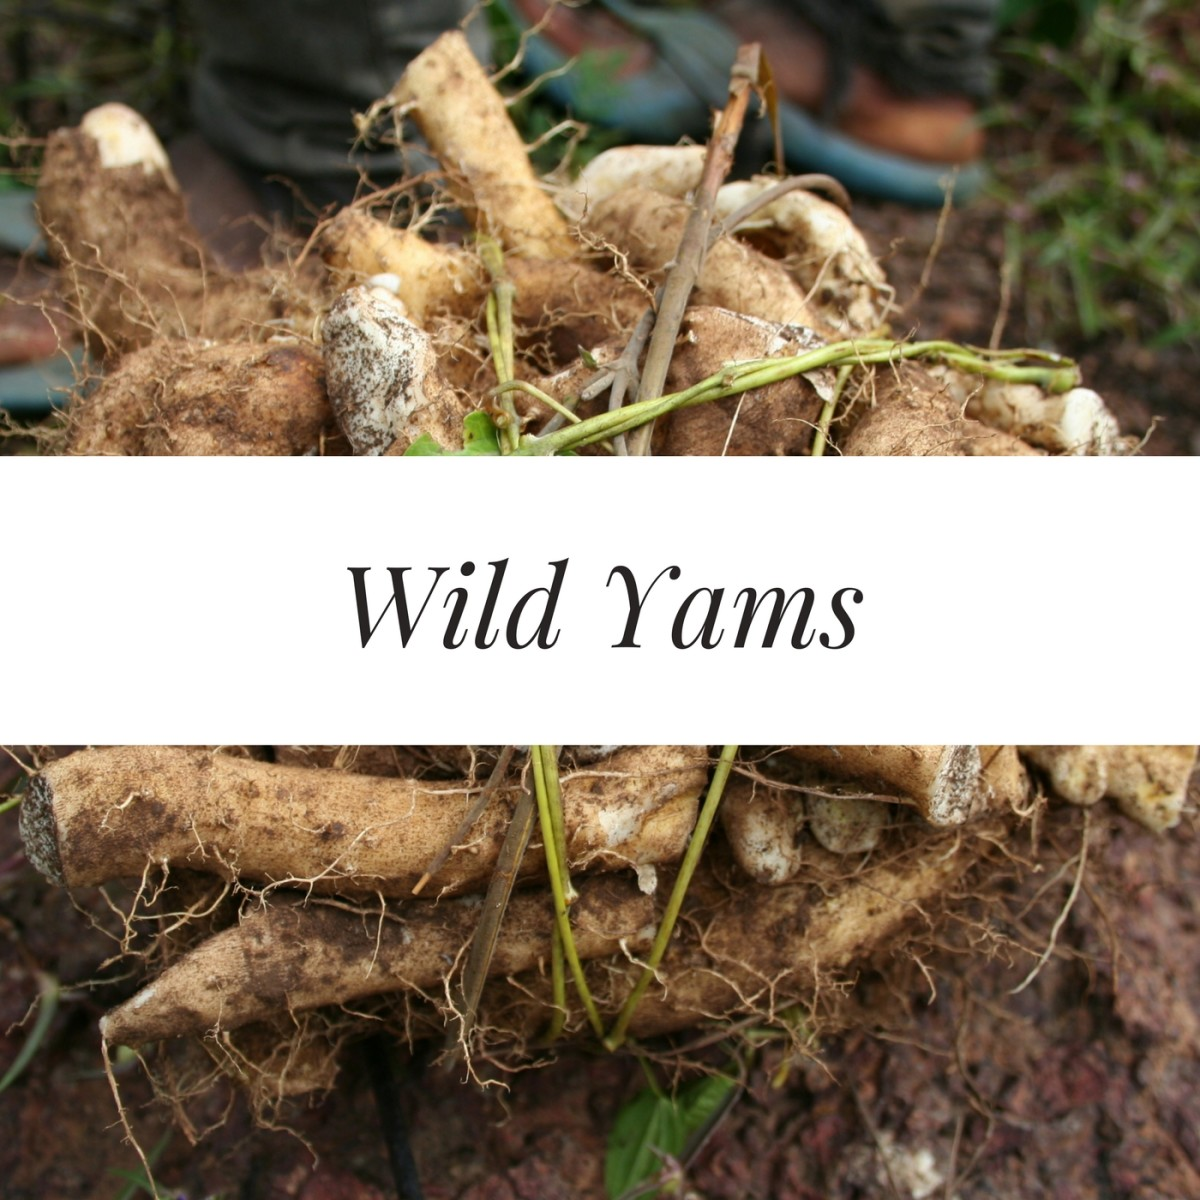 The Yoruba tribe, who eat wild yams on a daily basis, have abnormally high twin birth rates.